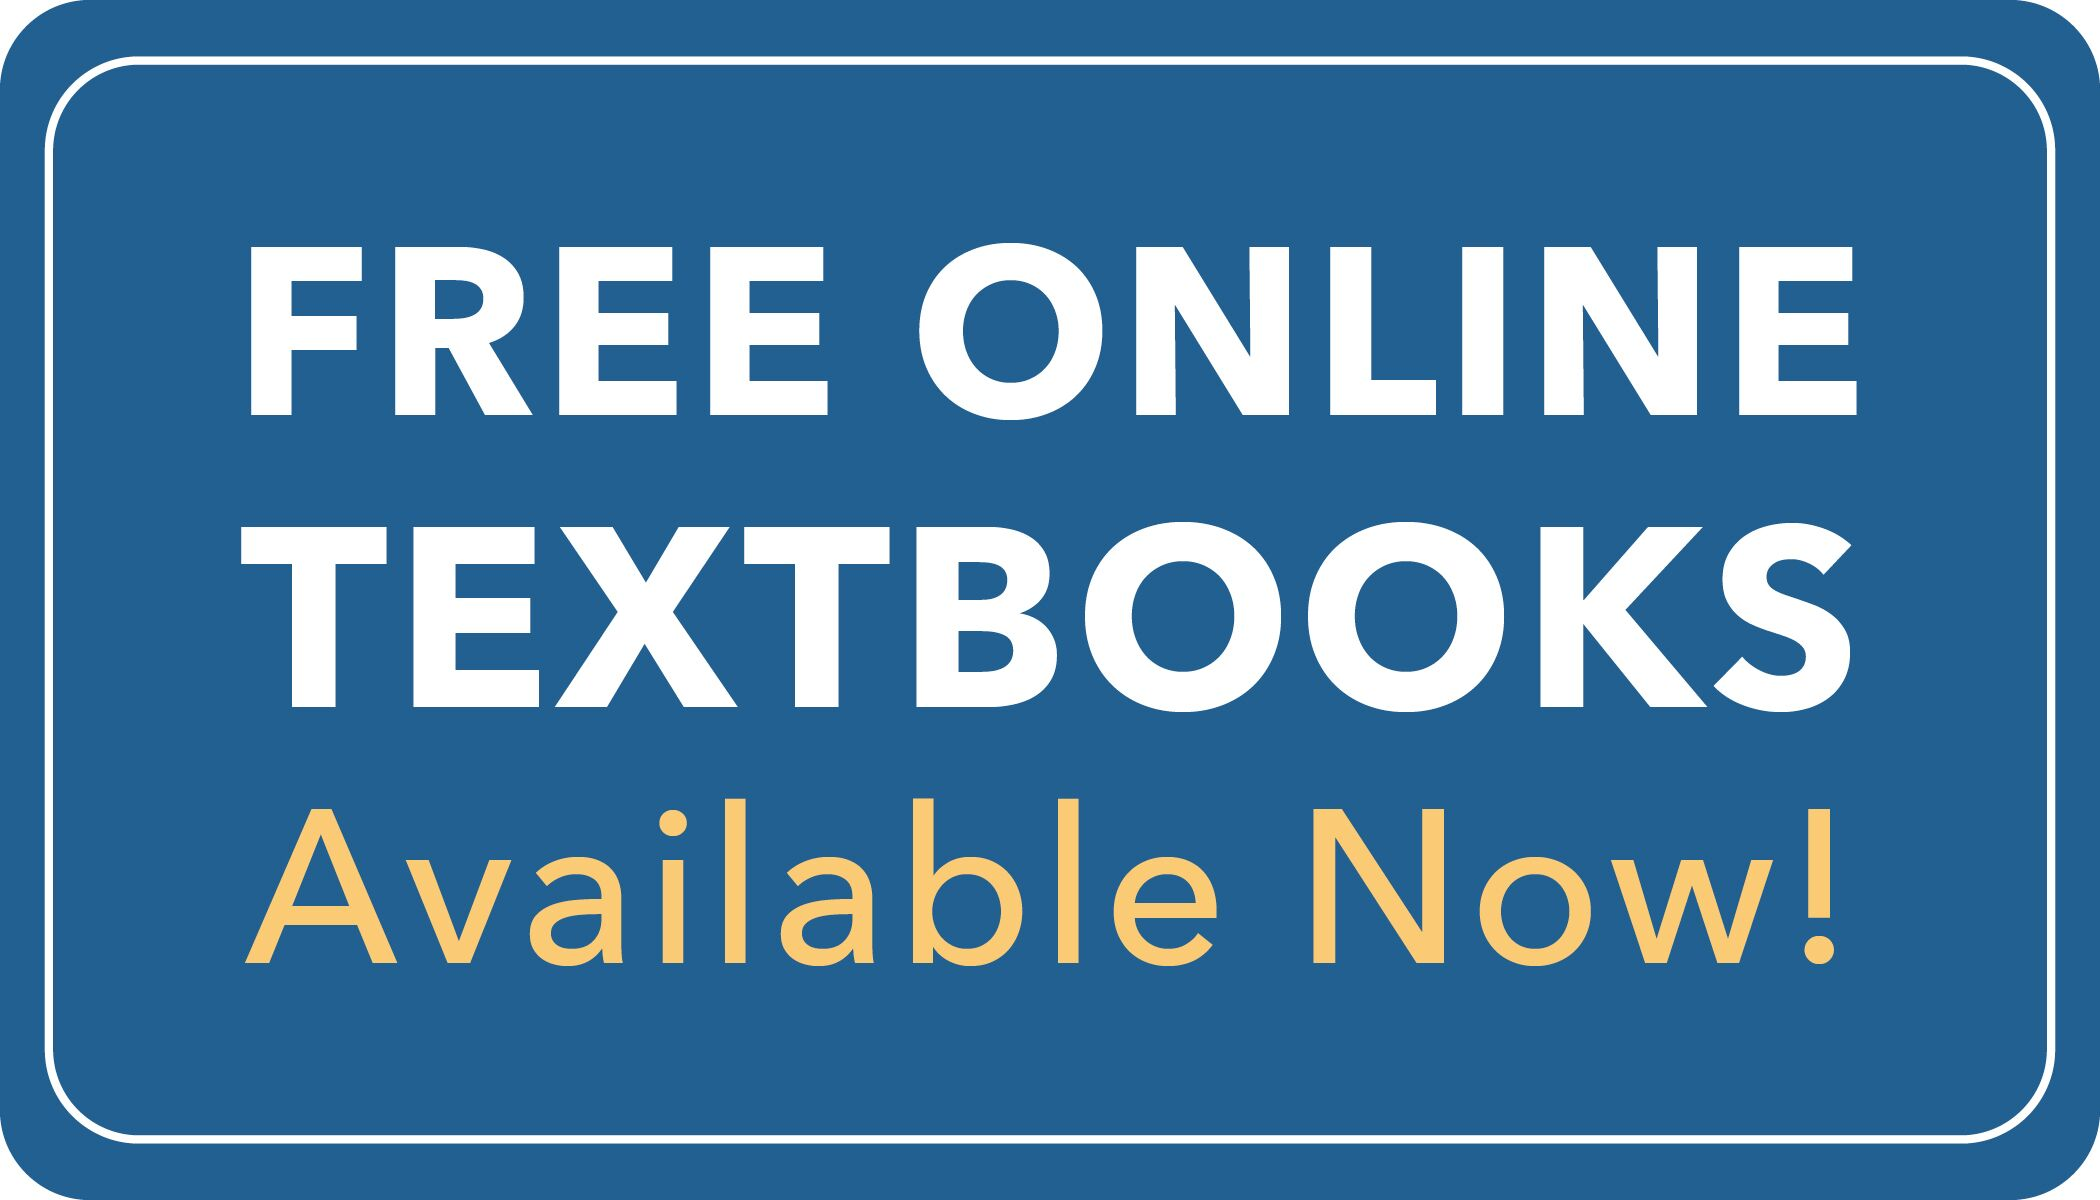 Free Online Textbooks - Available Now!